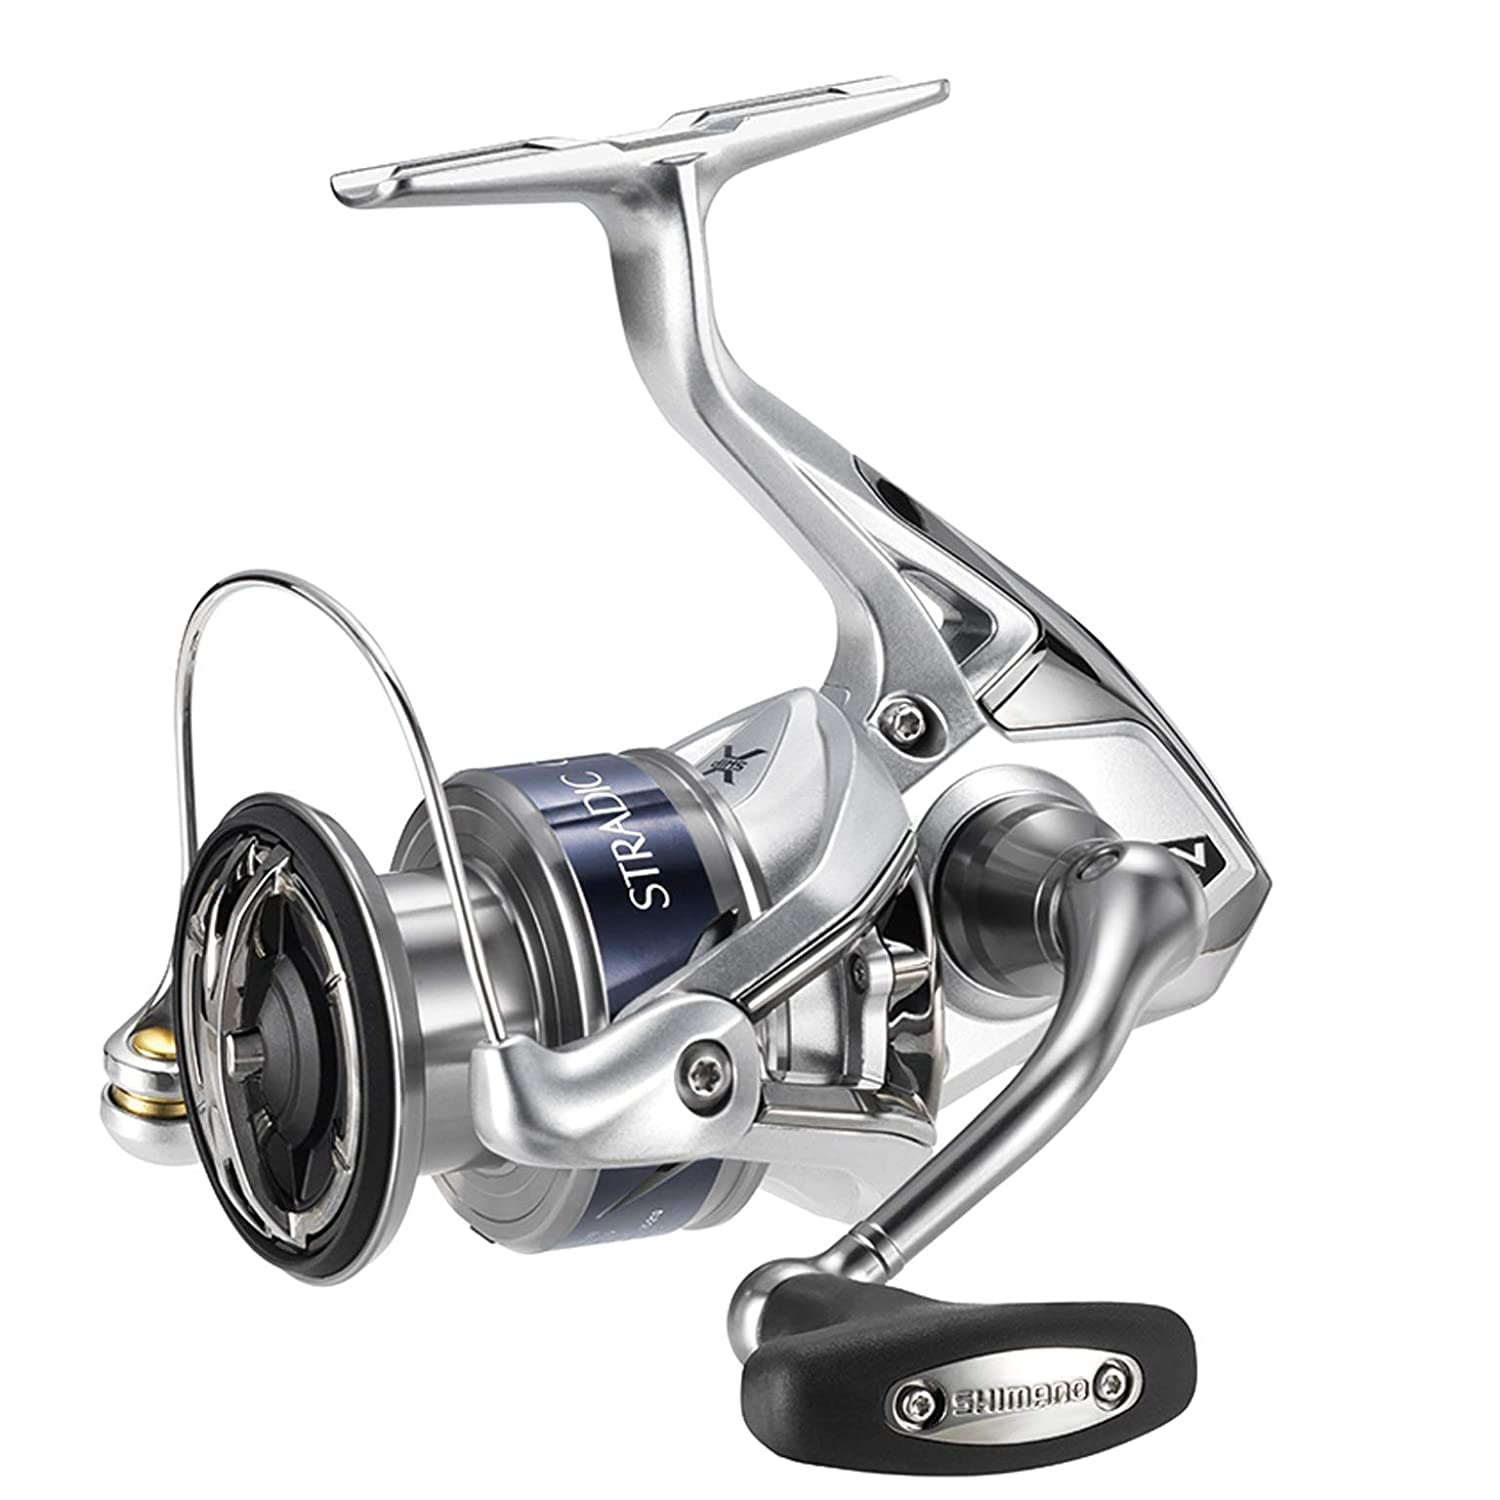 Shimano Stradic FK Spinning Reel Review